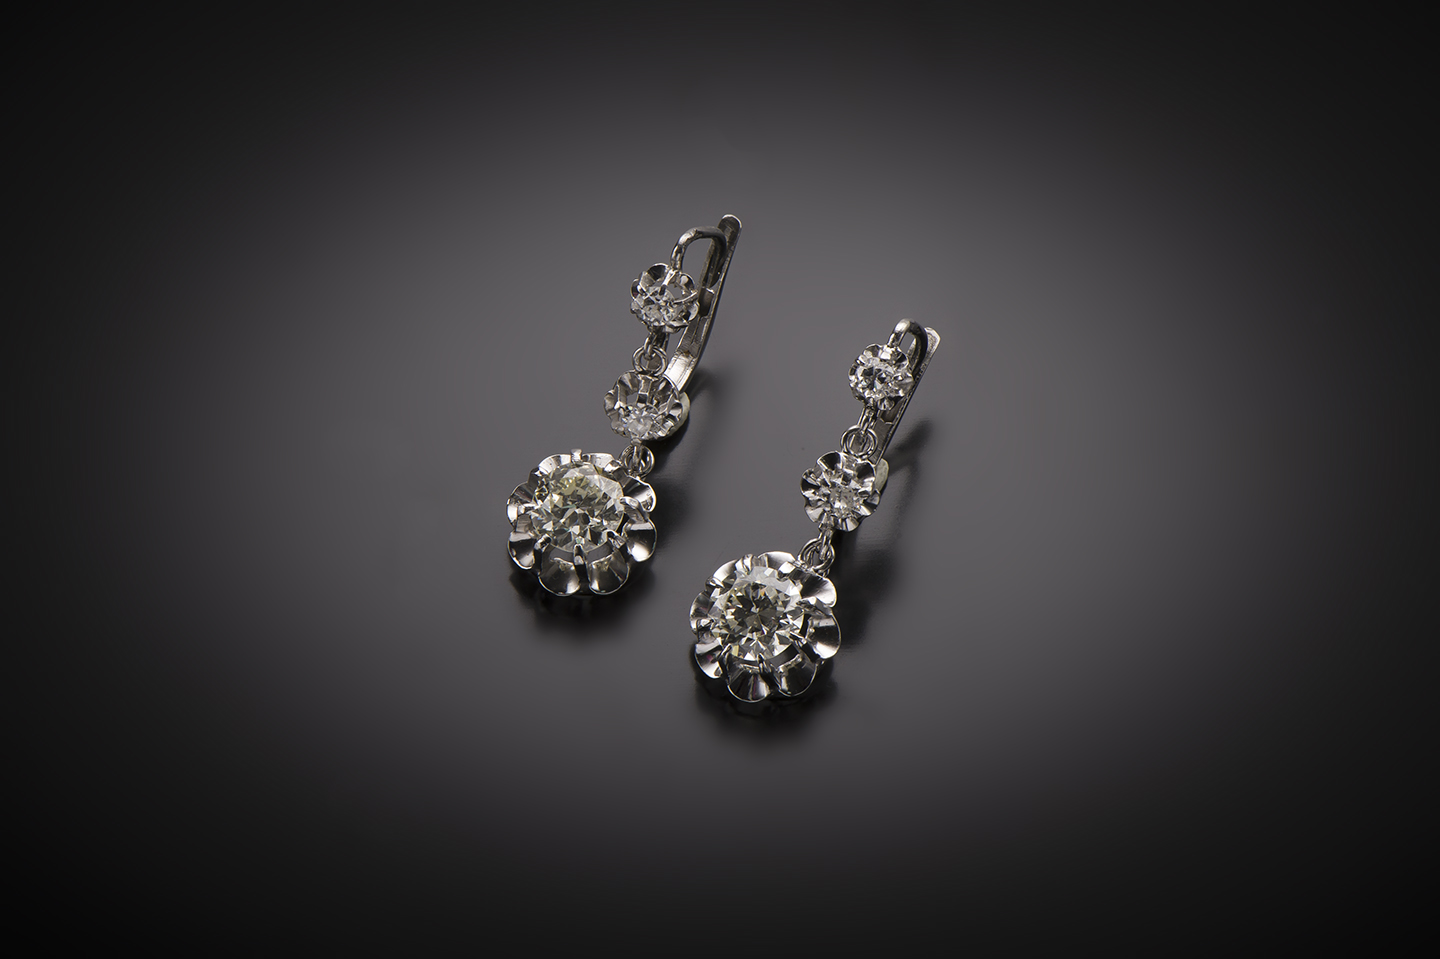 Pendants d'oreilles diamants 1,80 carat vers 1930-1